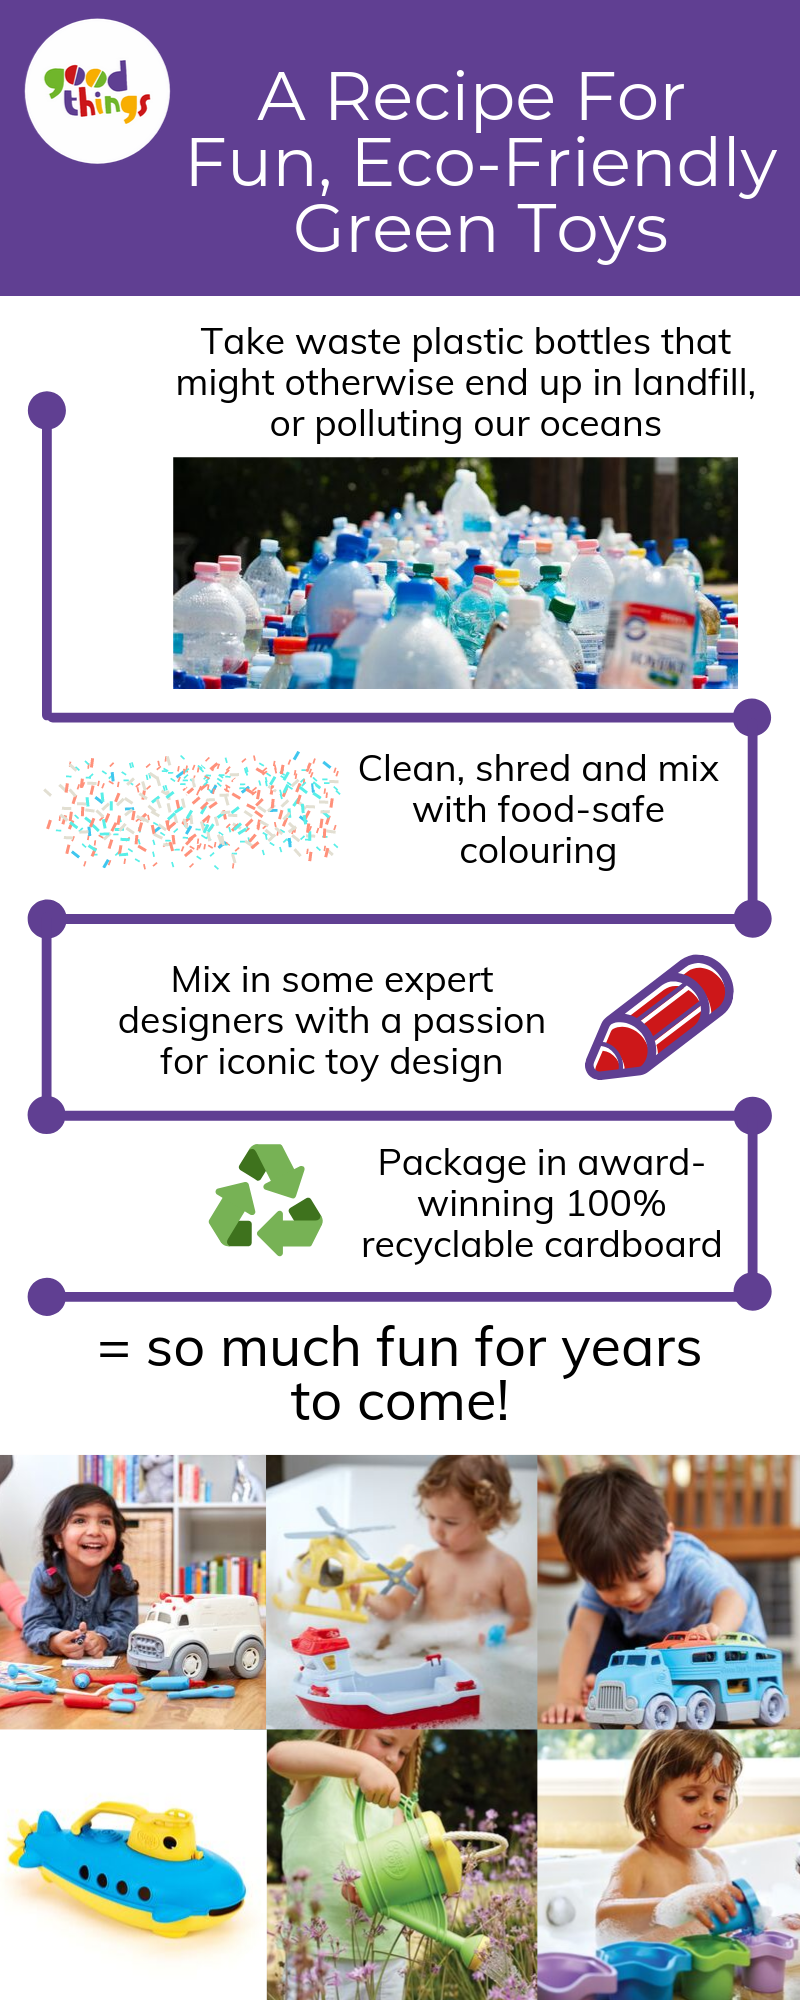 Eco-friendly Green Toys Infographic blog version